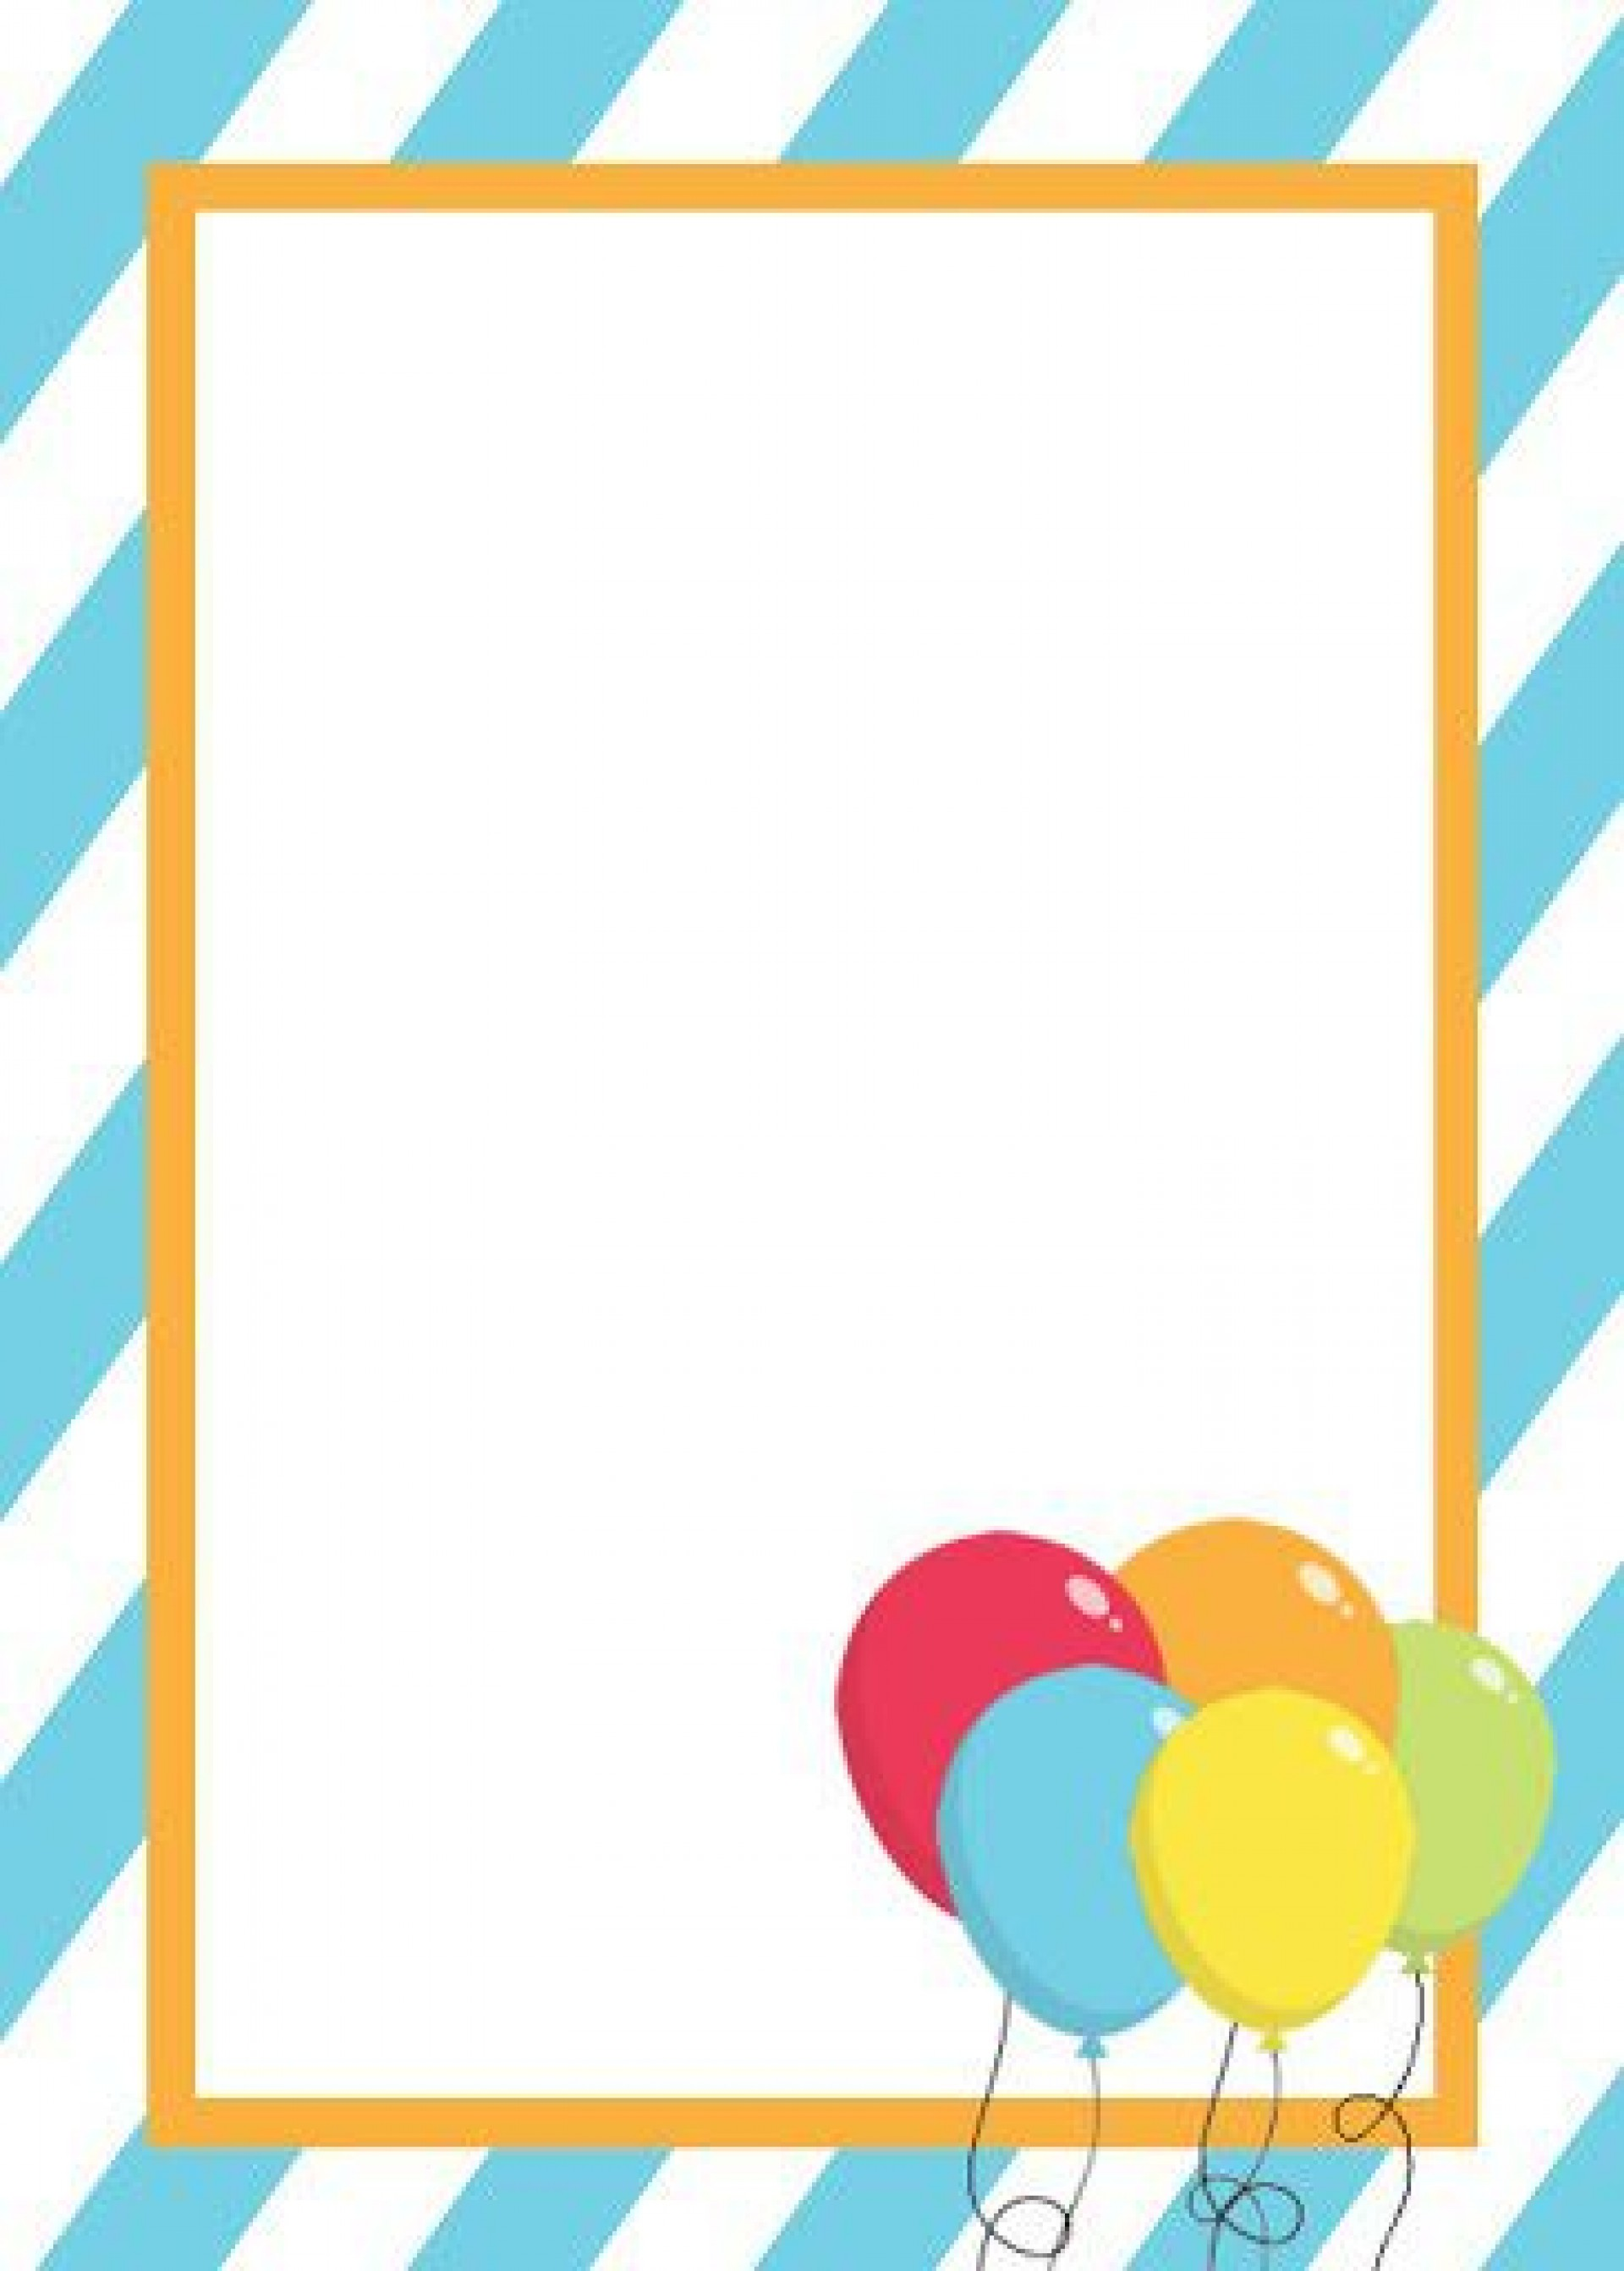 005 Simple Birthday Party Invitation Template Word Example  40th Wording Sample Unicorn Free1920